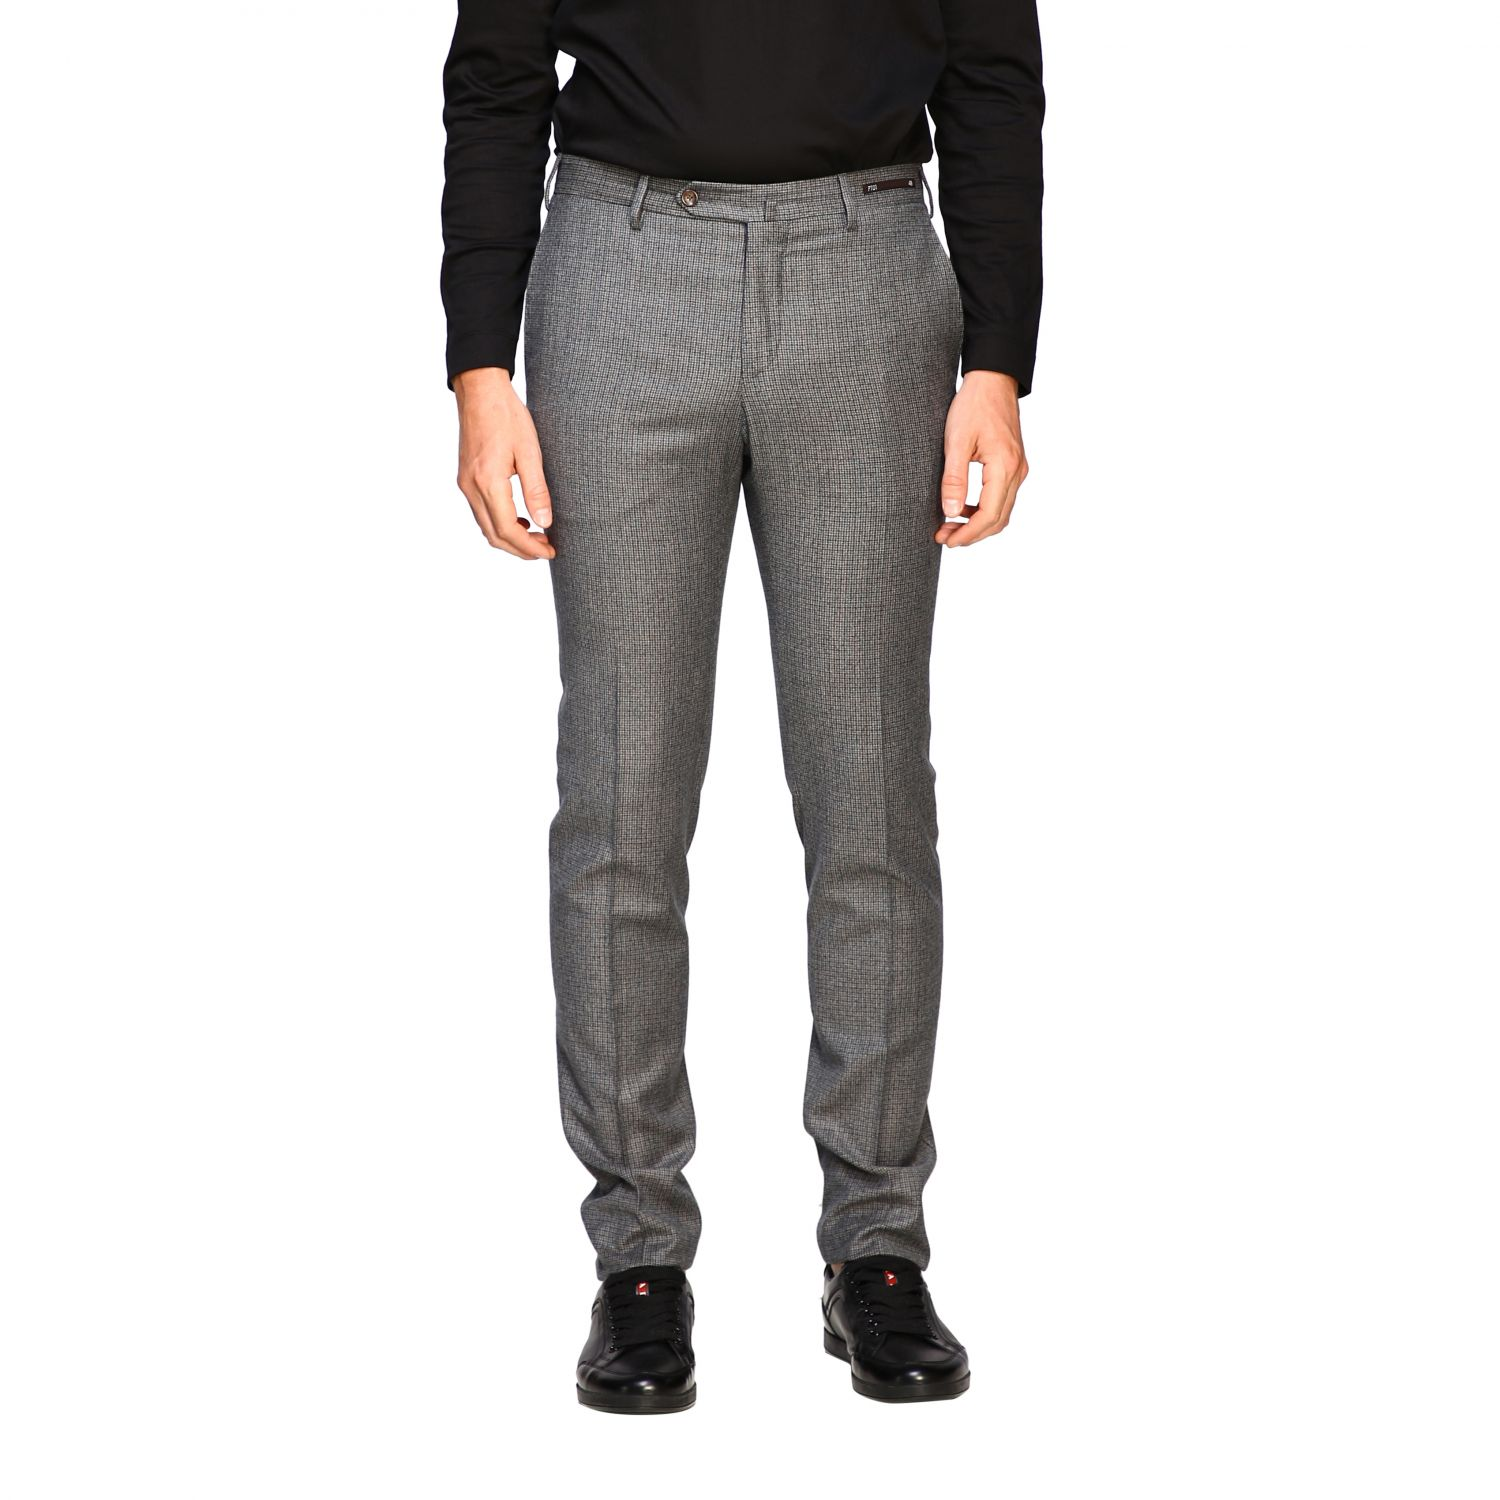 Trousers Pt: Trousers men Pt grey 1